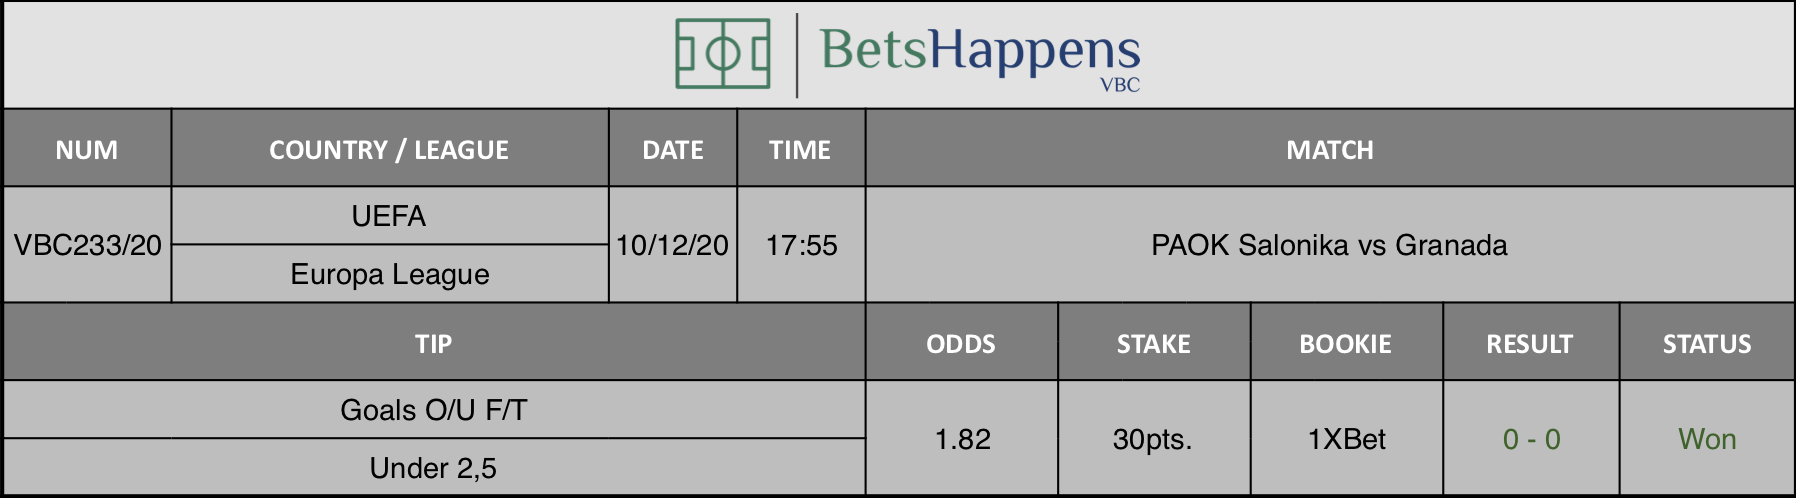 Results of our tip for the PAOK Salonika vs Granada match where Goals O/U F/T Under 2,5 is recommended.